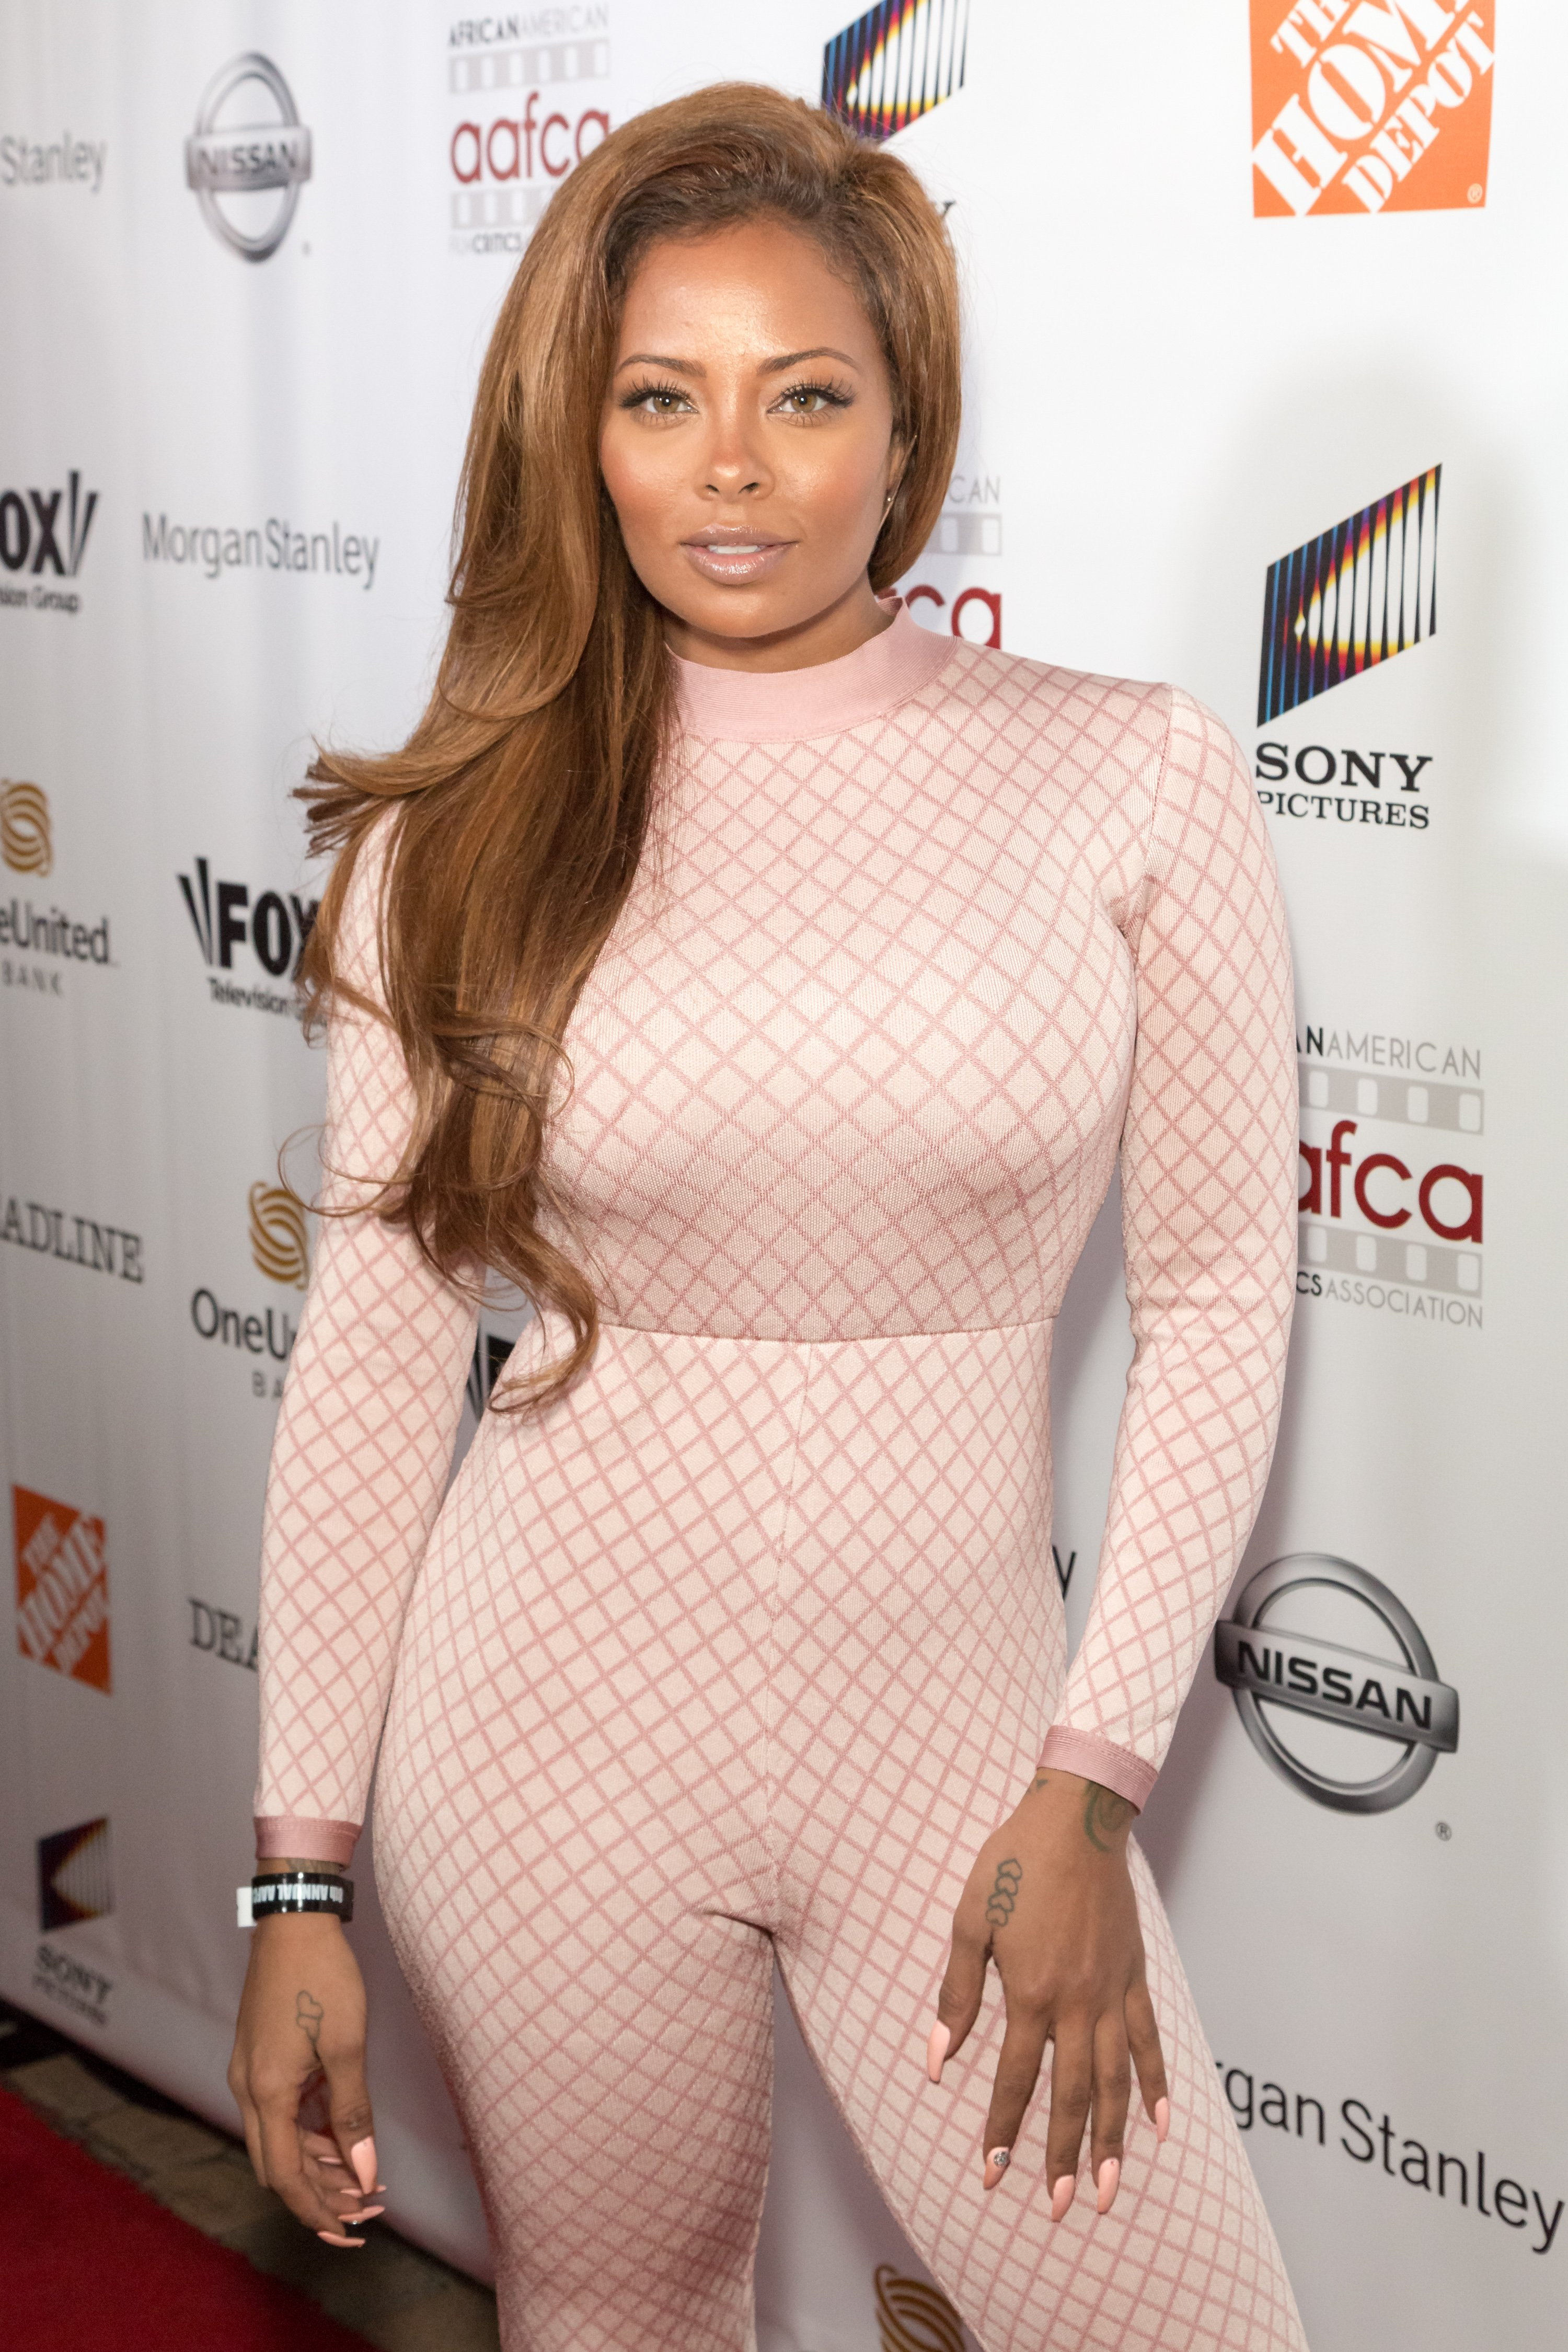 Eva Marcille at the red carpet of the 8th Annual AAFCA Awards in Los Angeles in February 2017.   Photo: Getty Images